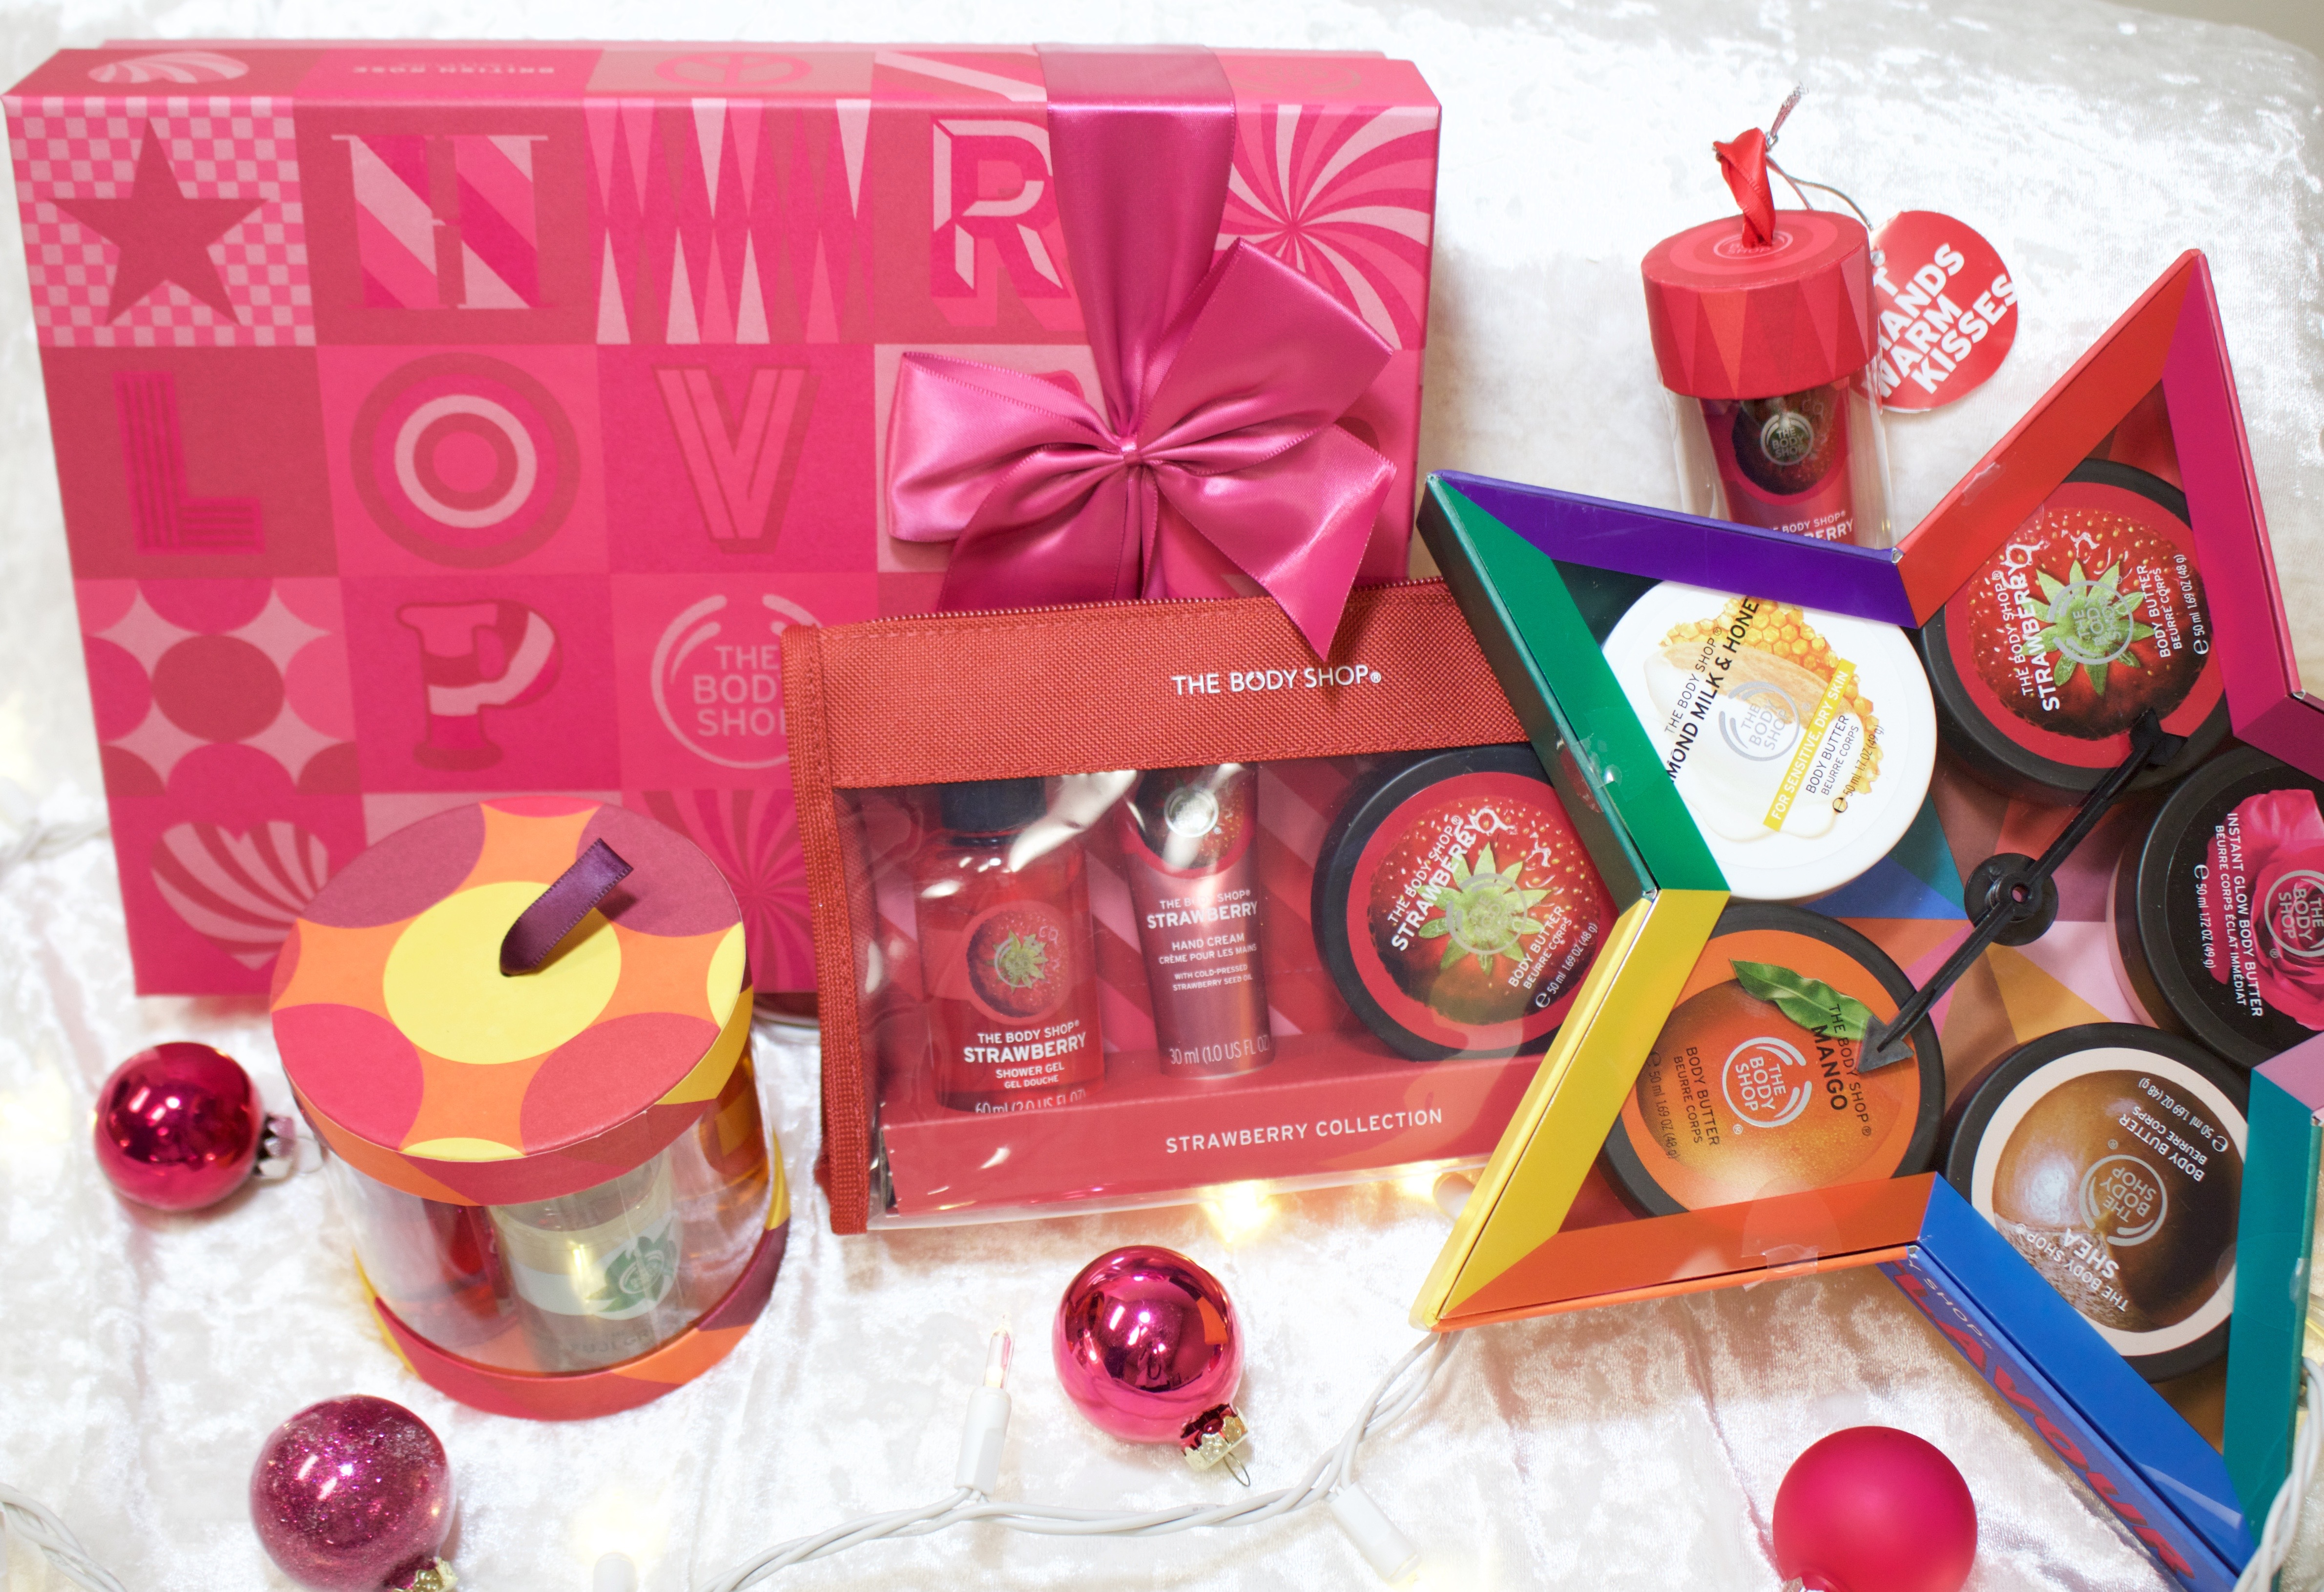 The Body Shop christmas gift ideas